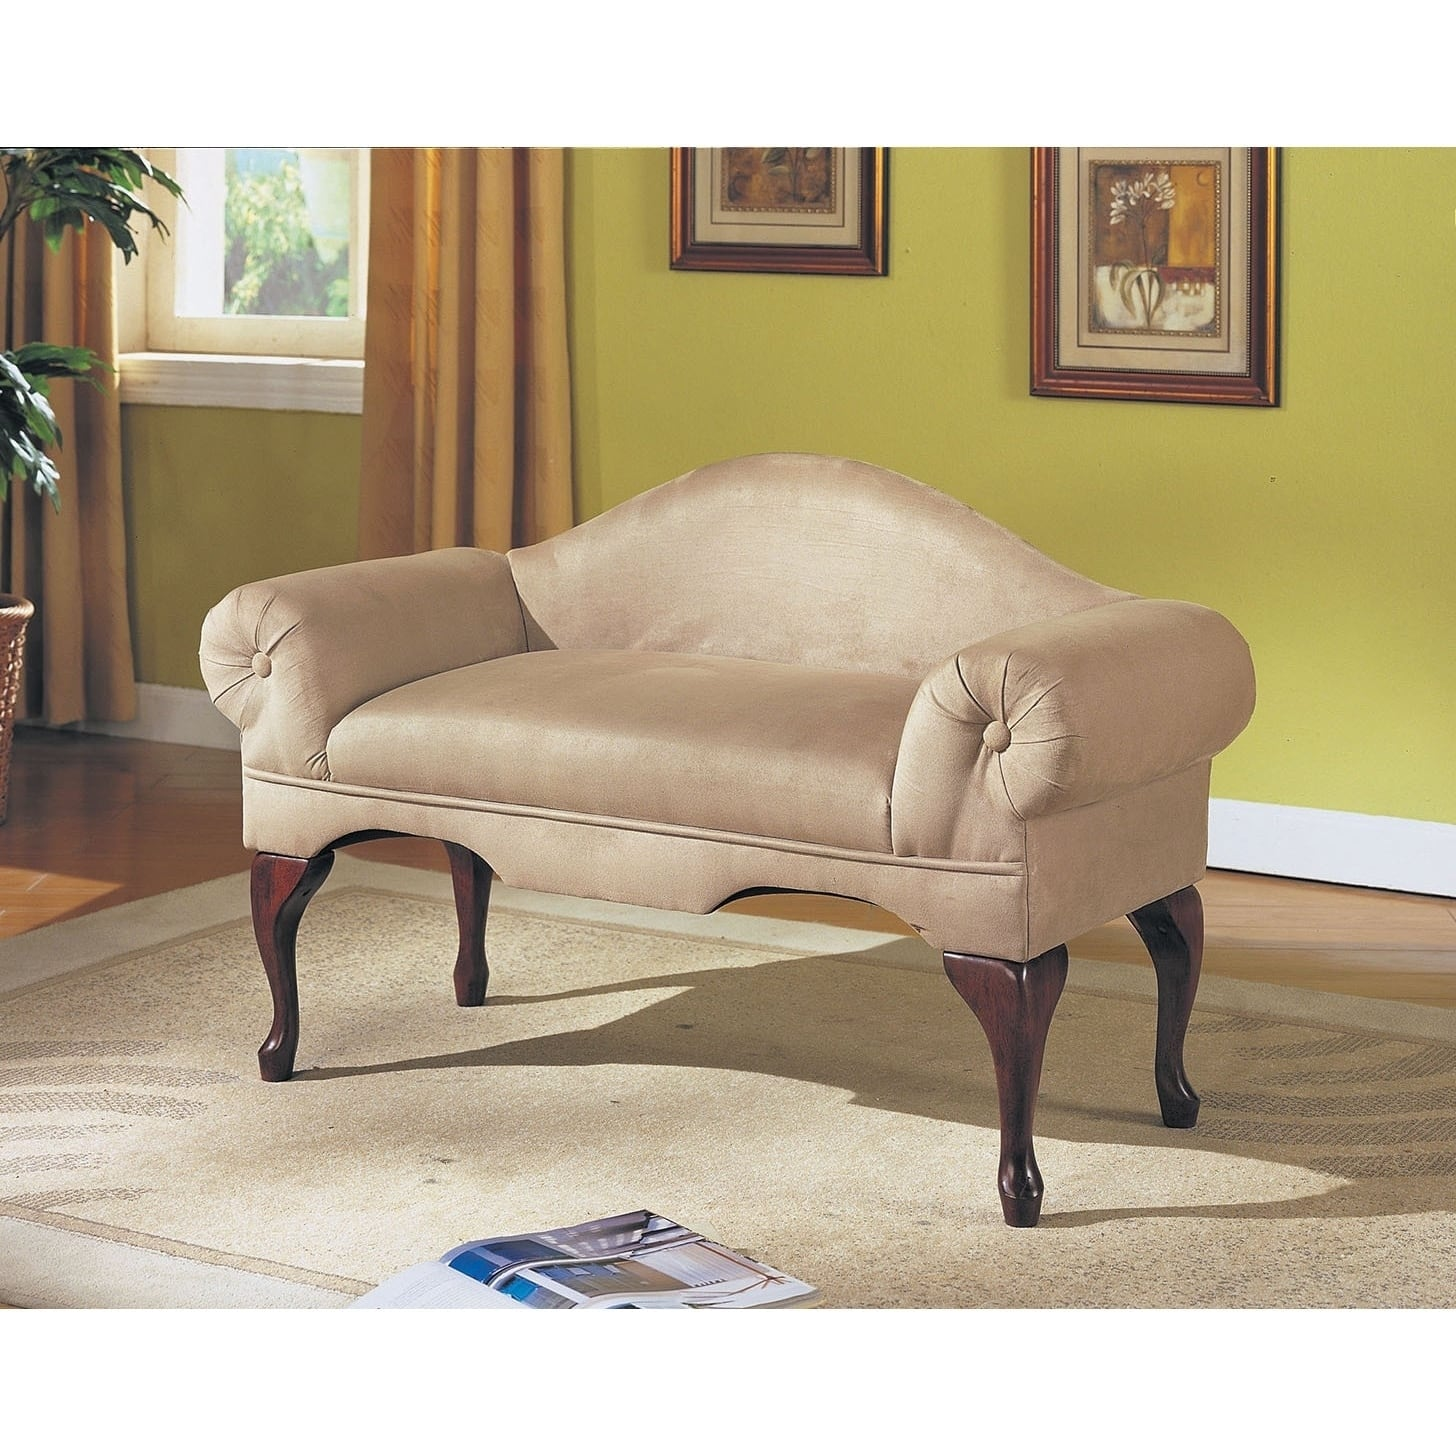 ACME Aston Beige Microfiber Bench With Rolled Arms (Beige...